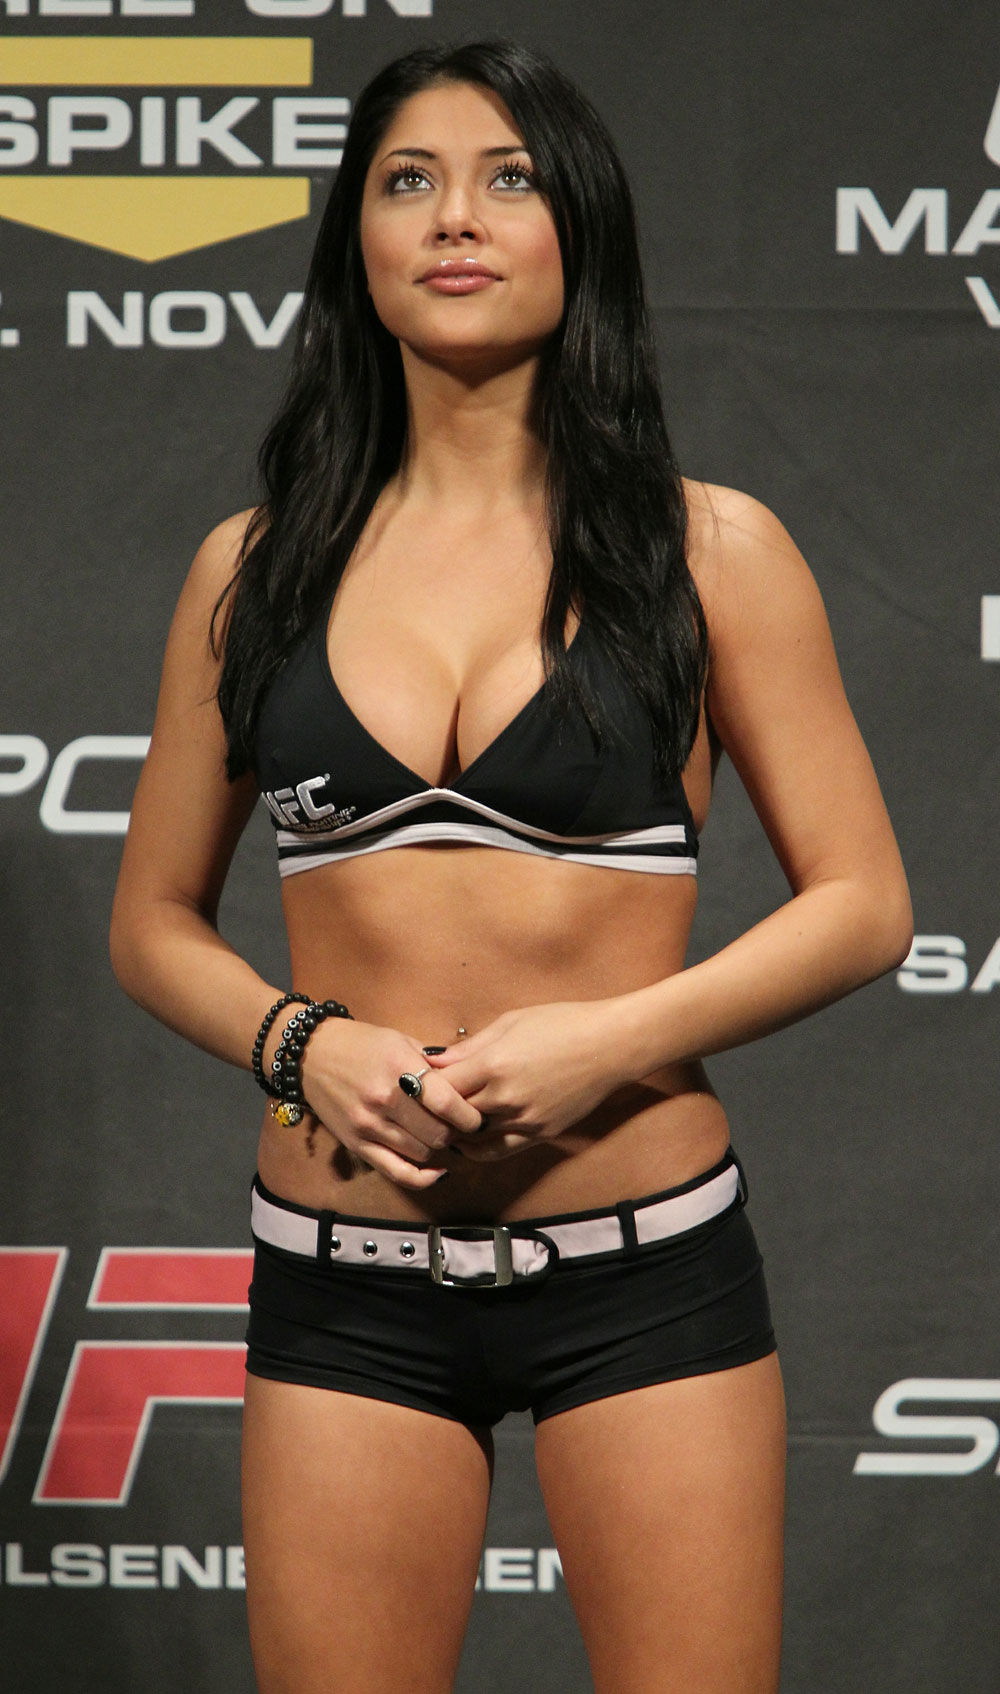 UFC Octagon Girl Arianny Celeste at the UFC 122 weigh-in at the Kšnig Pilsener Arena on November 12,  2010 in Oberhausen, Germany.  (Photo by Josh Hedges/Zuffa LLC/Zuffa LLC via Getty Images)